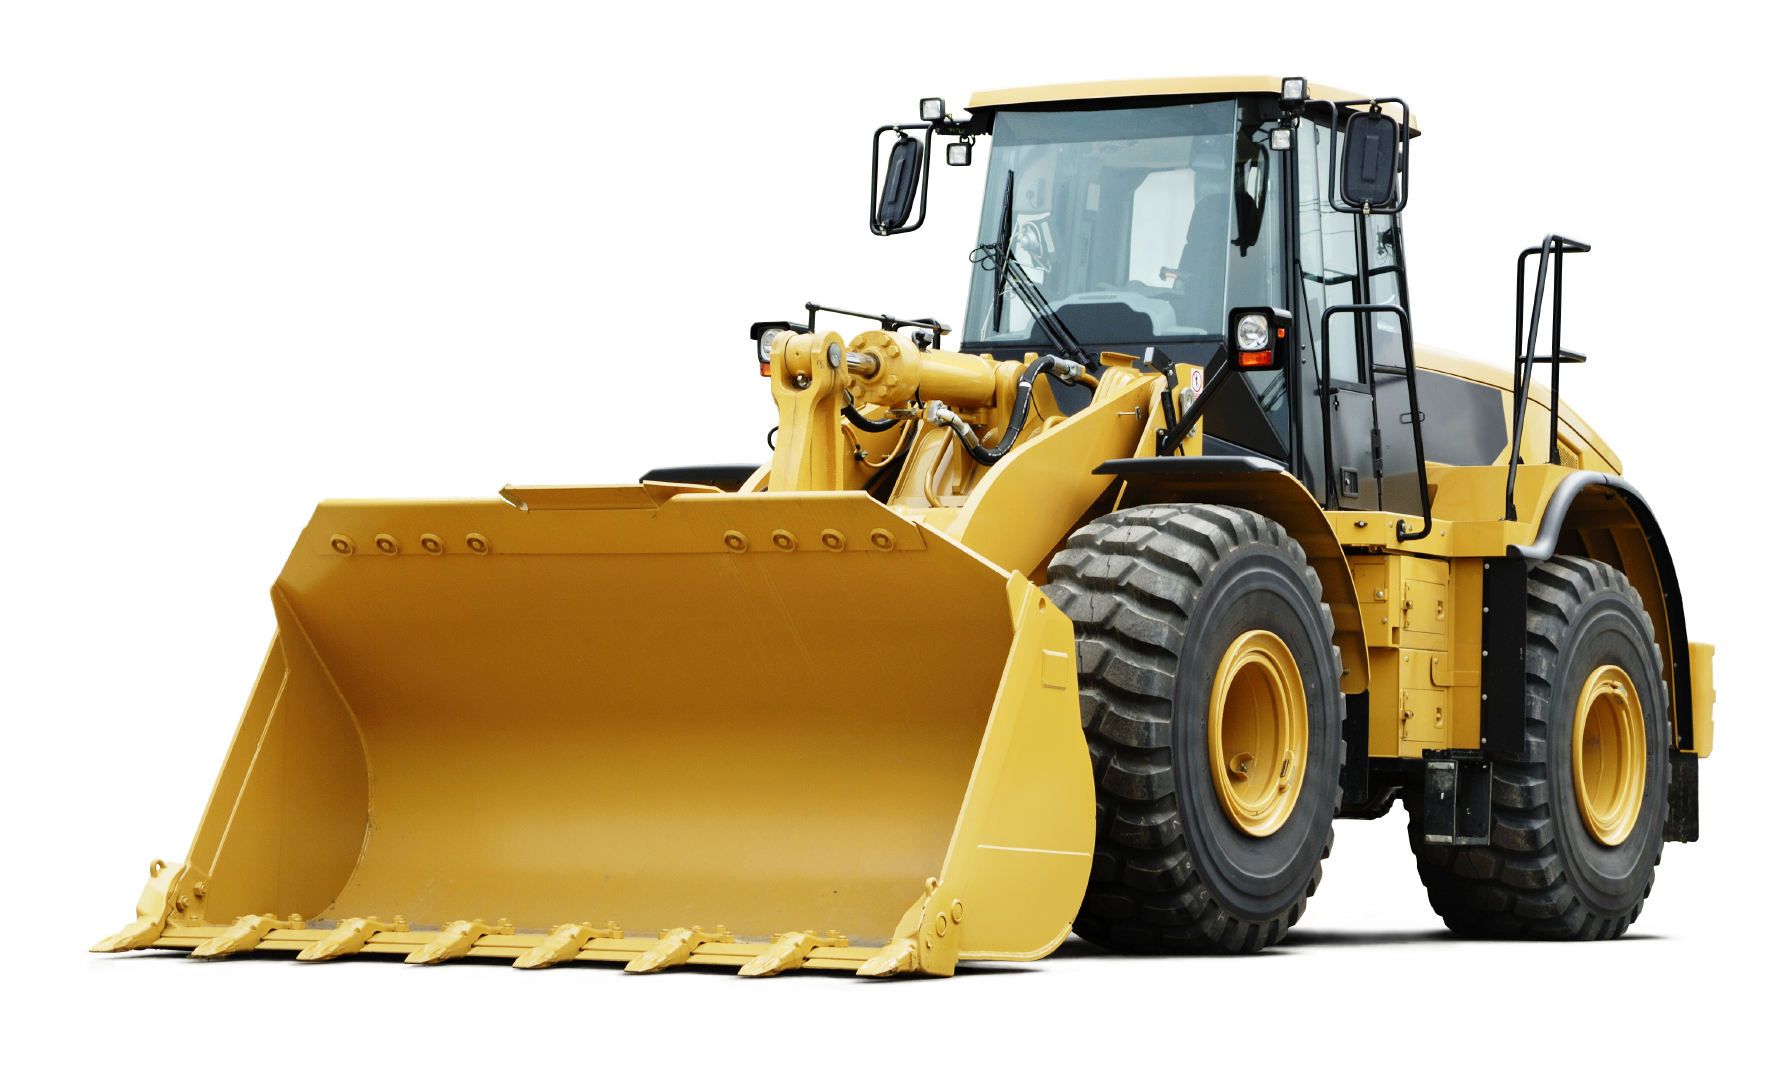 cat-bulldozer-clipart-cat-bulldozer-clipart-cat-XUoLJH-clipart.jpg